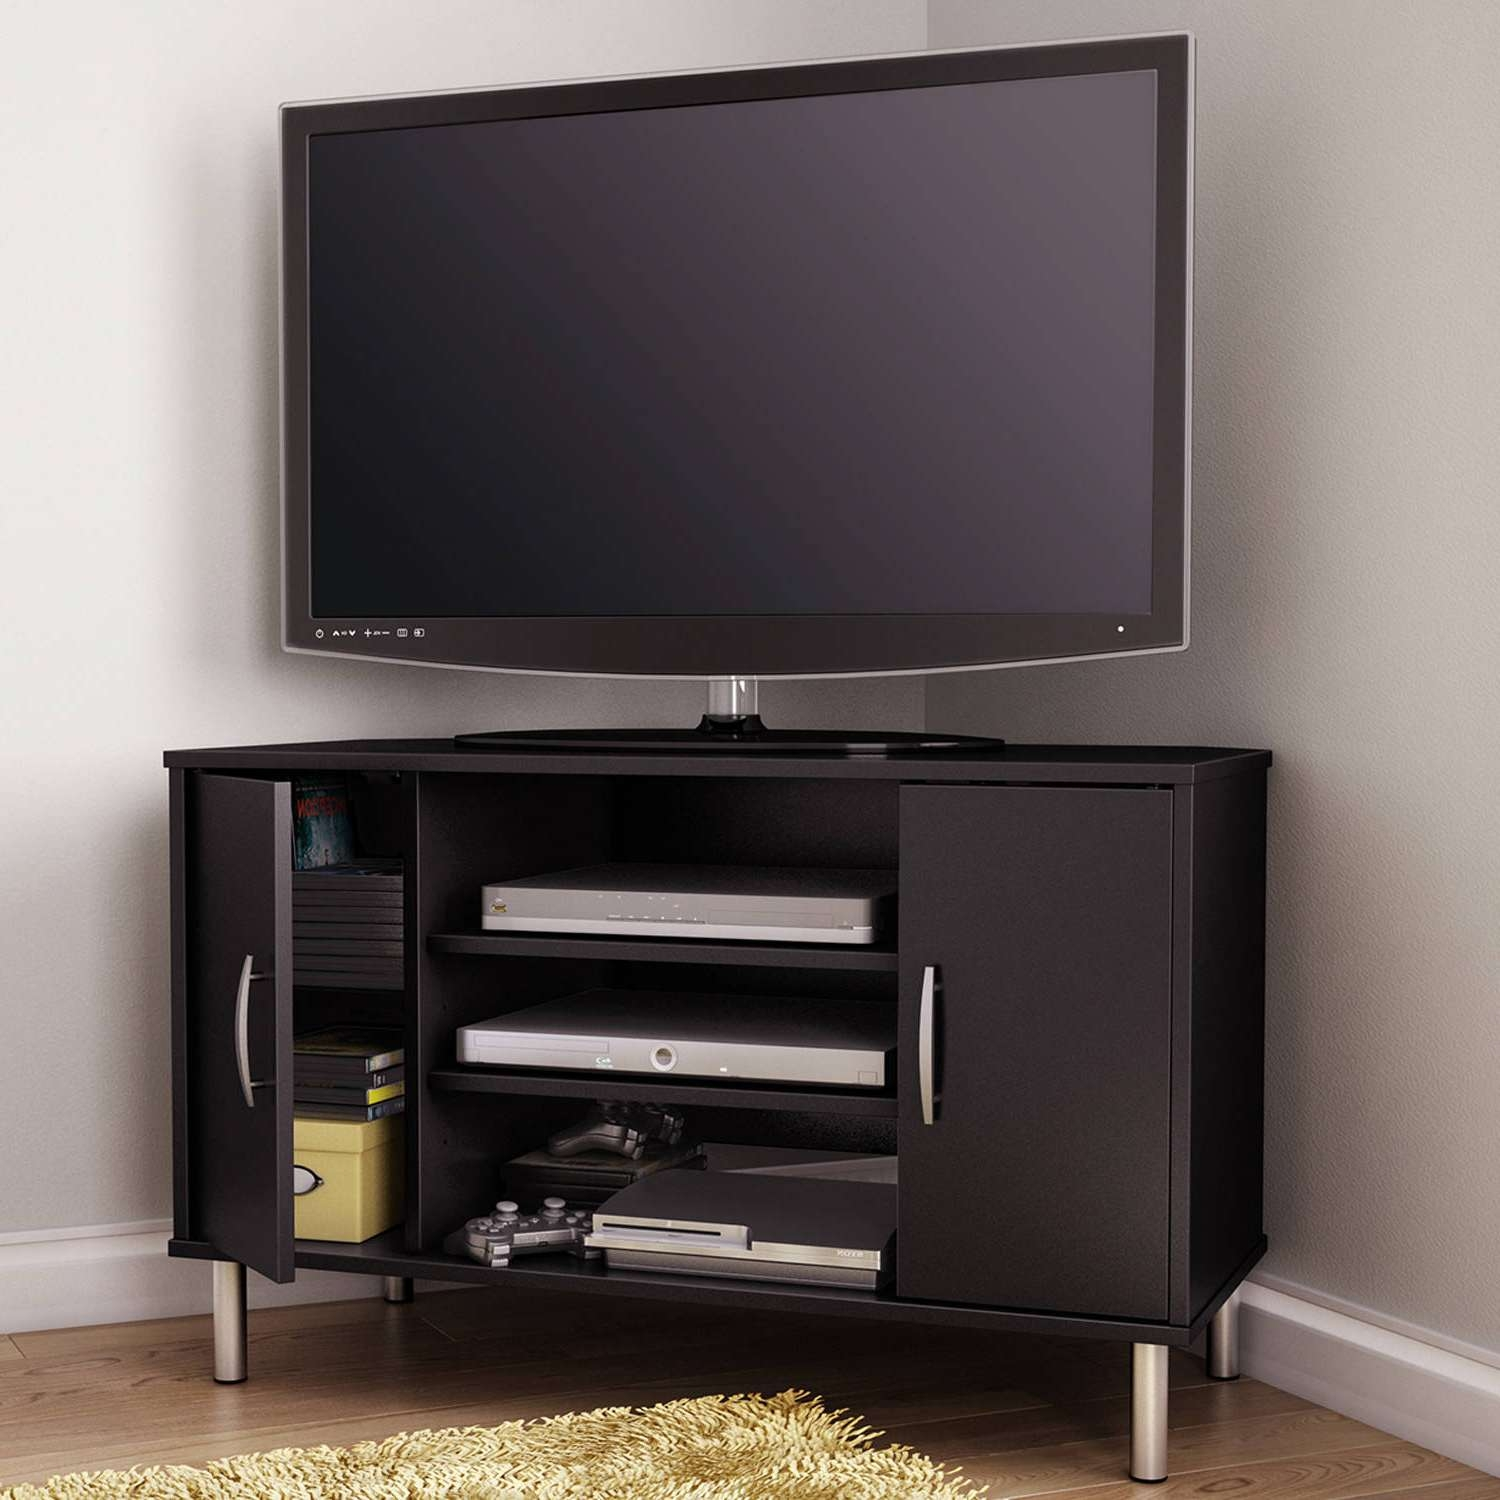 Tv Stand : 43 Literarywondrous Corner Tv Stand For 50 Inch Flat For Corner Tv Stands For 50 Inch Tv (View 4 of 20)